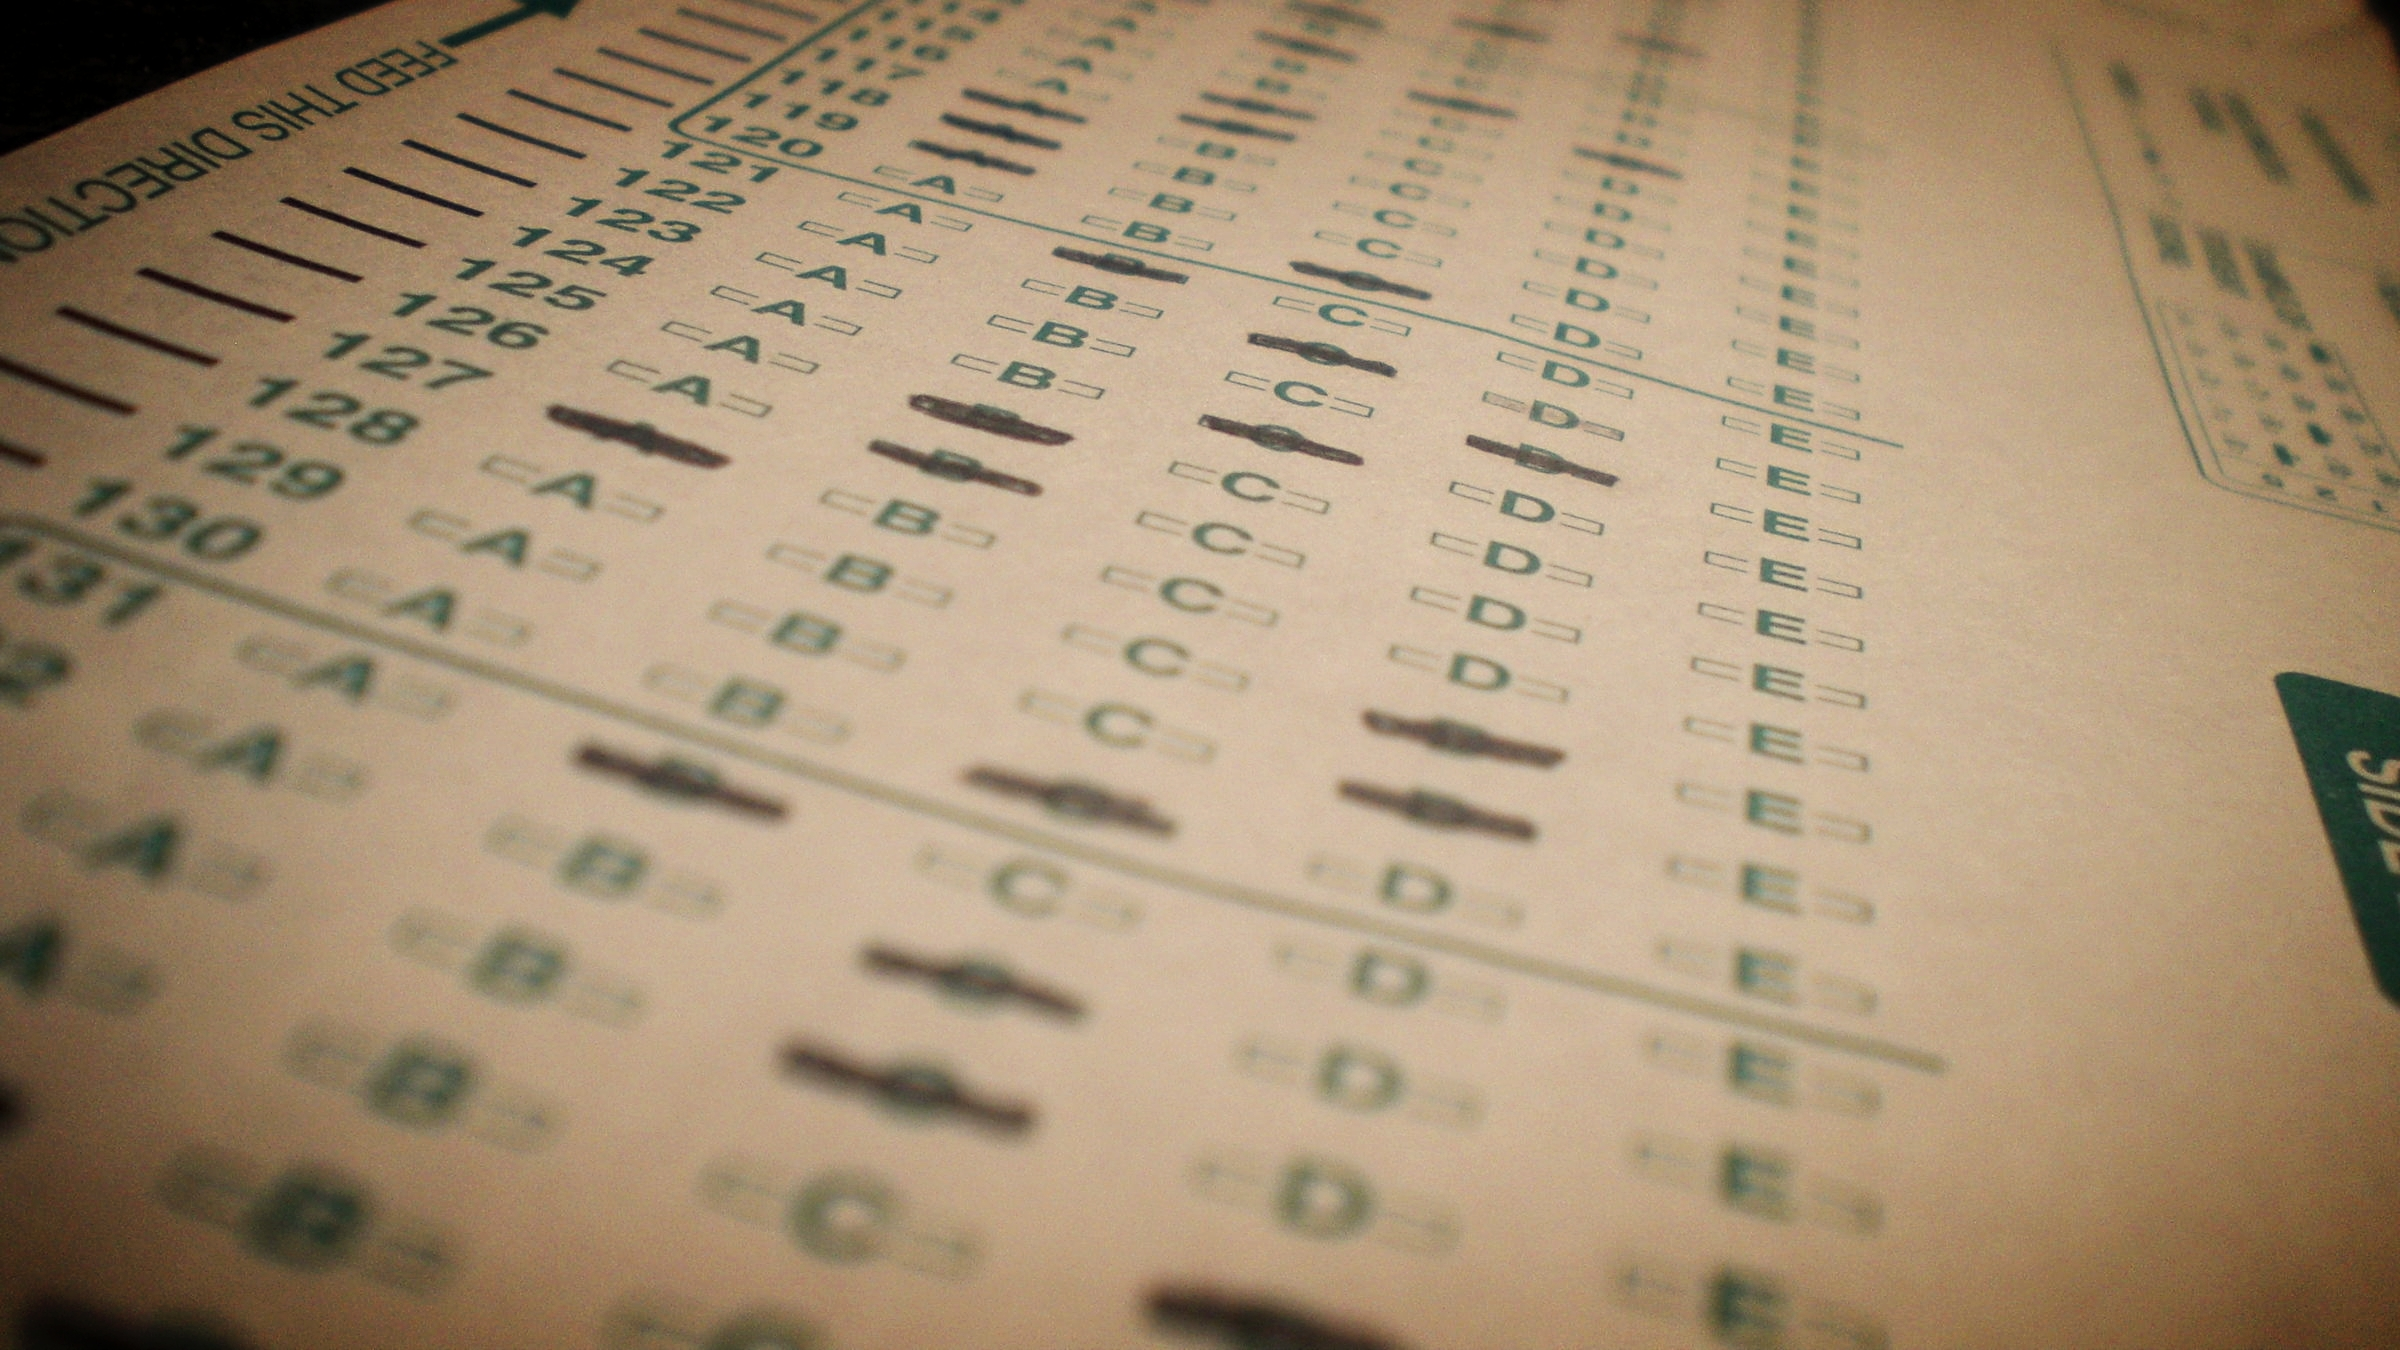 Practice using complete ACT tests, the key to improving timing and score.